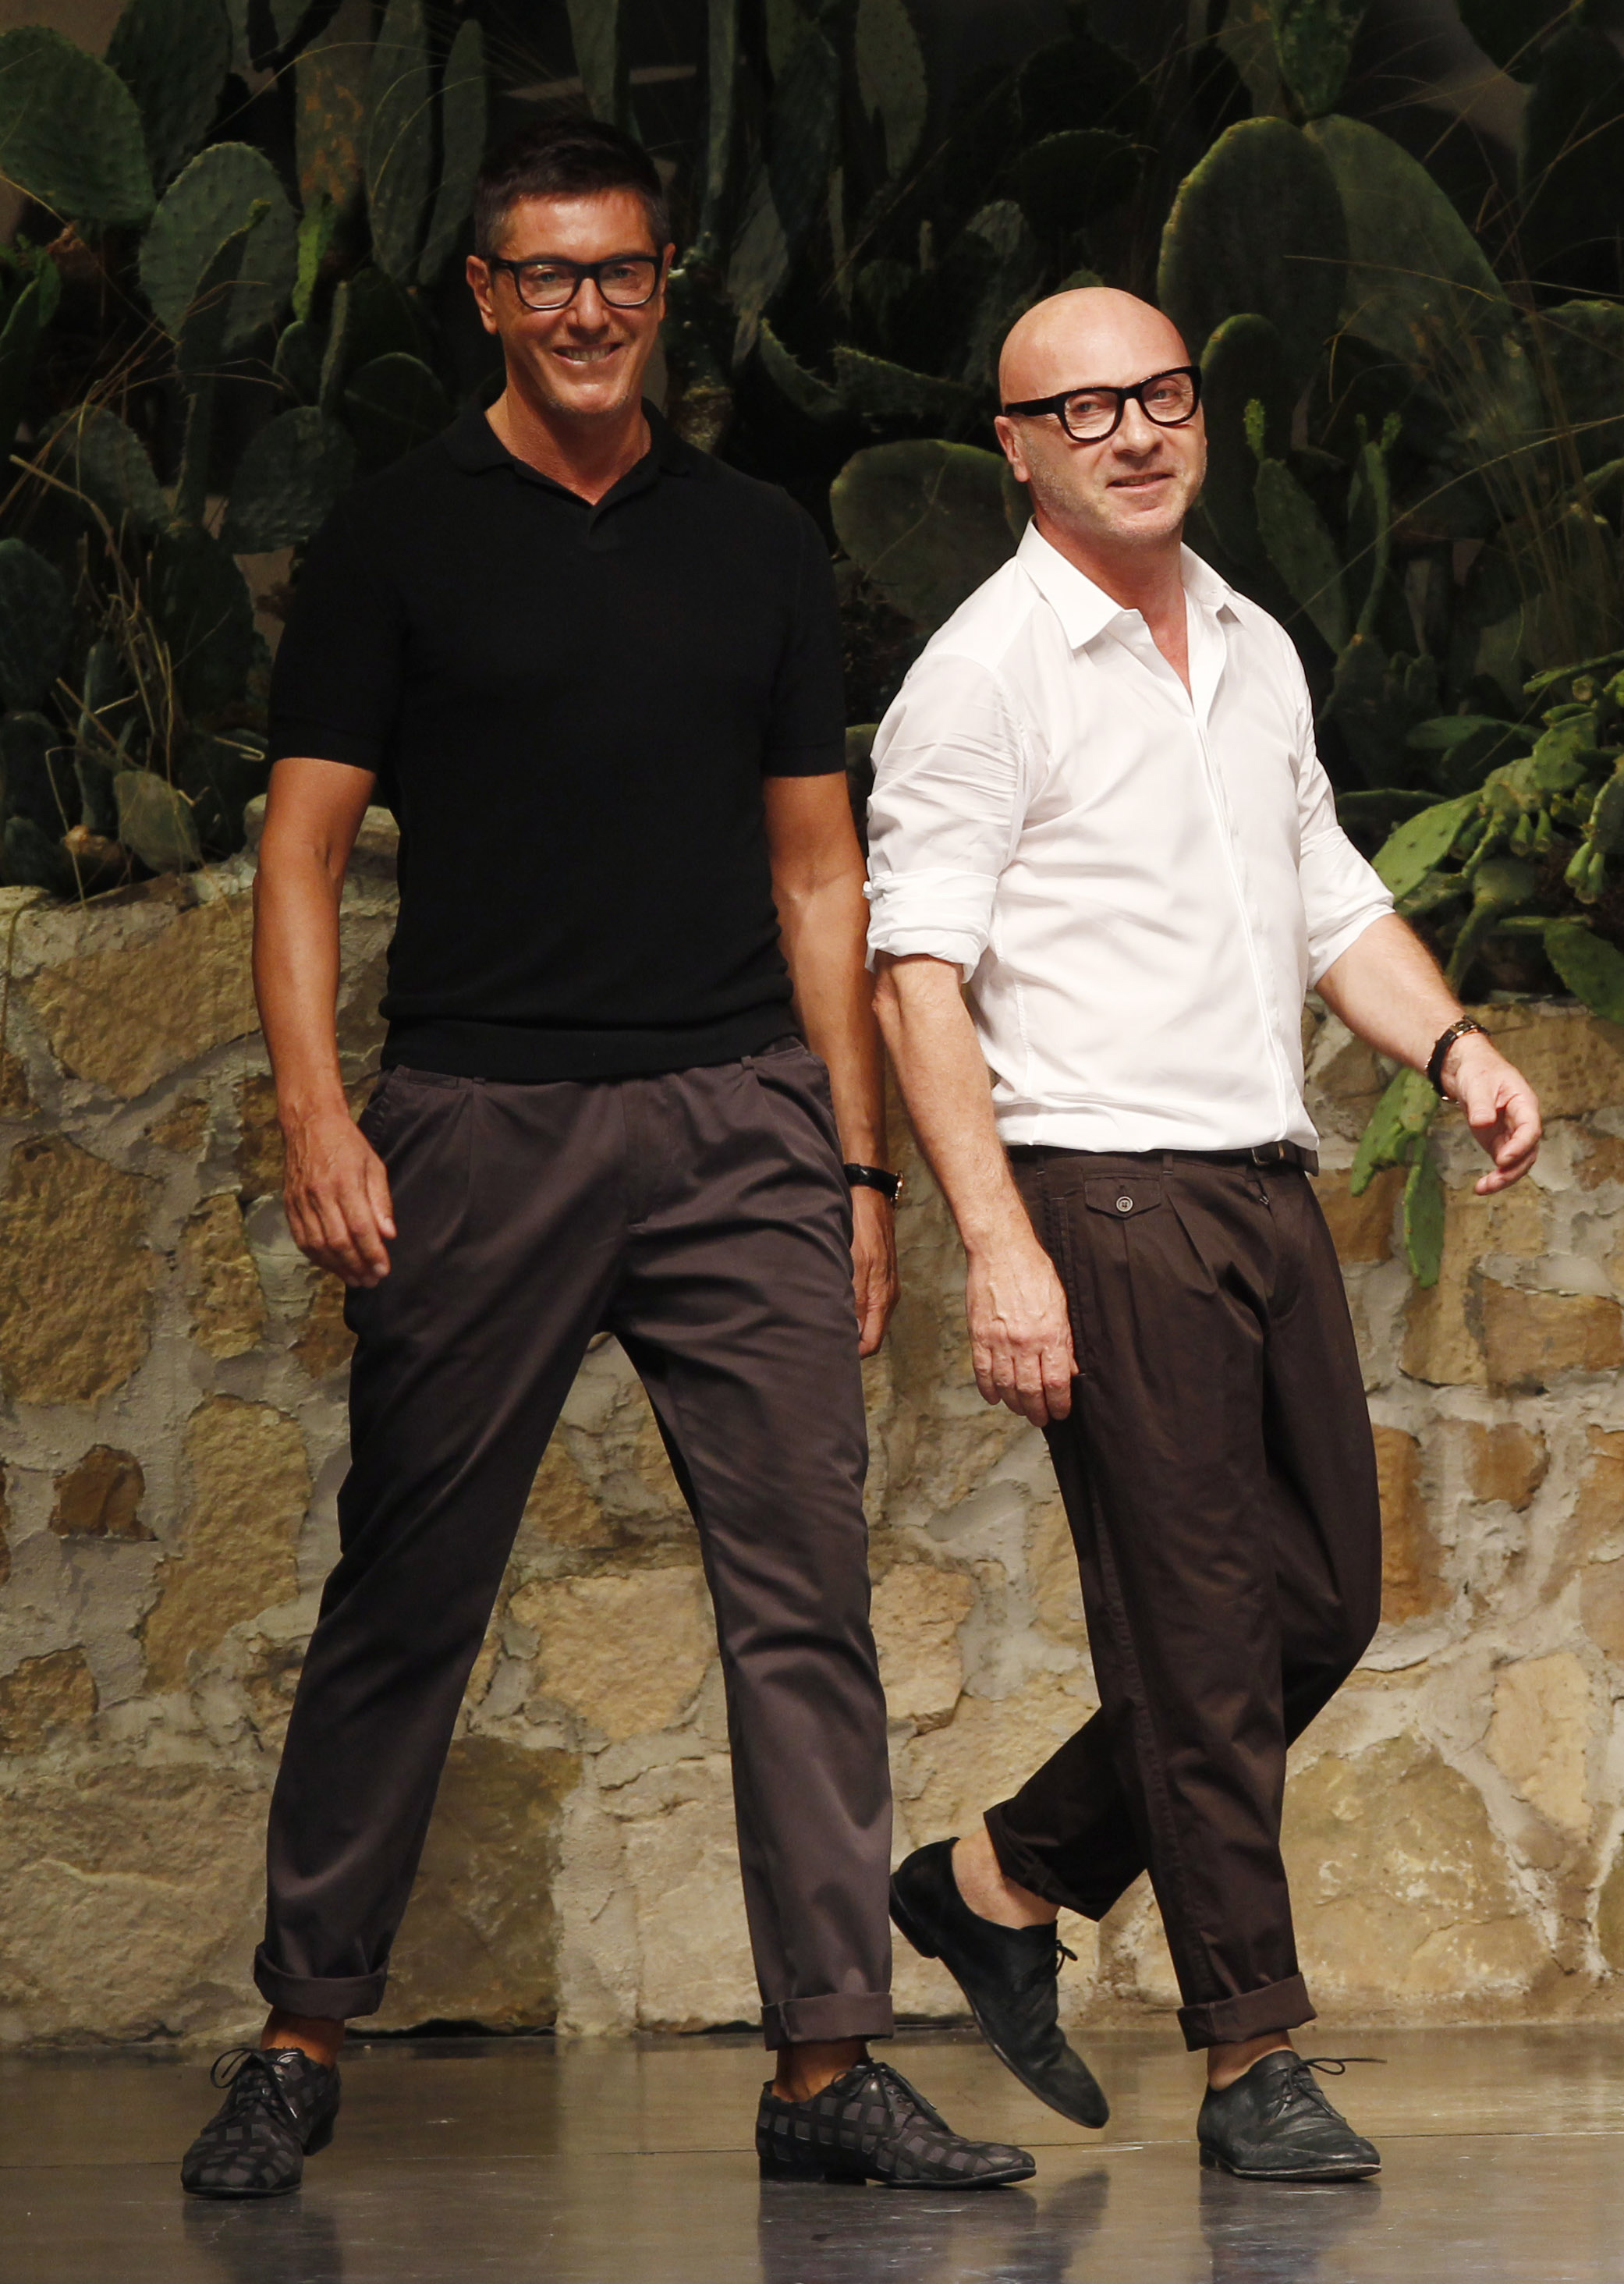 Stefano gabbana and domenico dolce dating advice